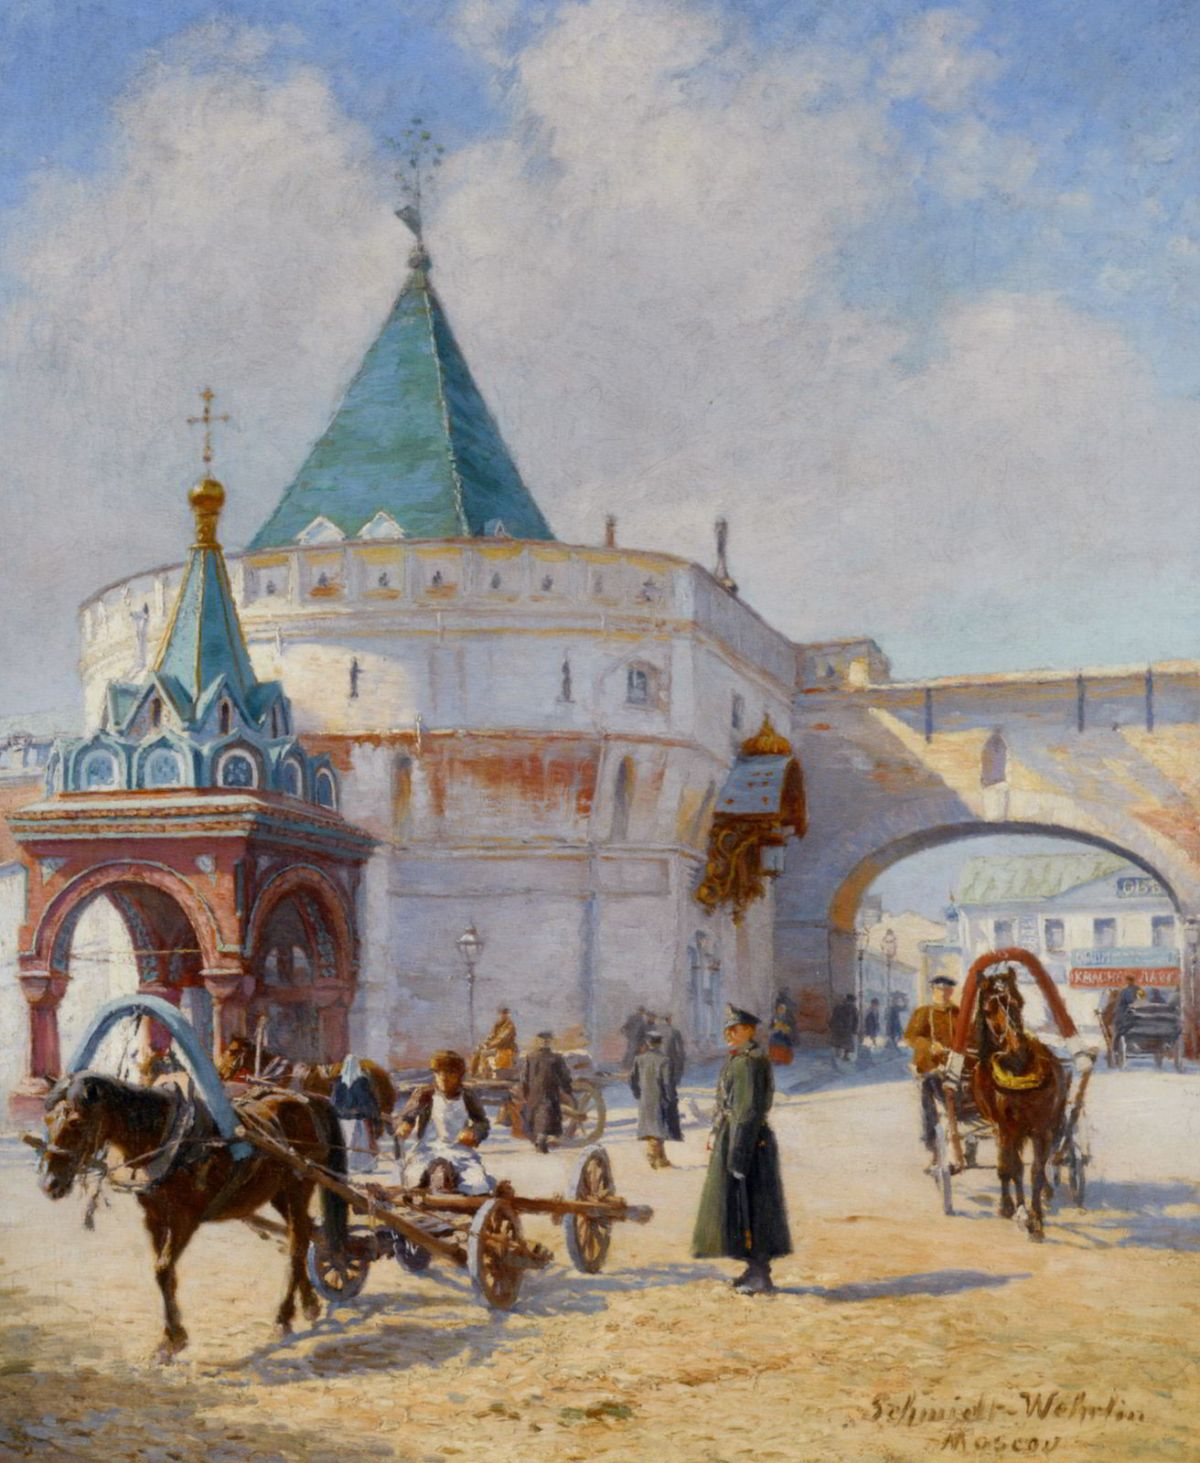 View of Moscow by Emile Schmidt-Wehrlin